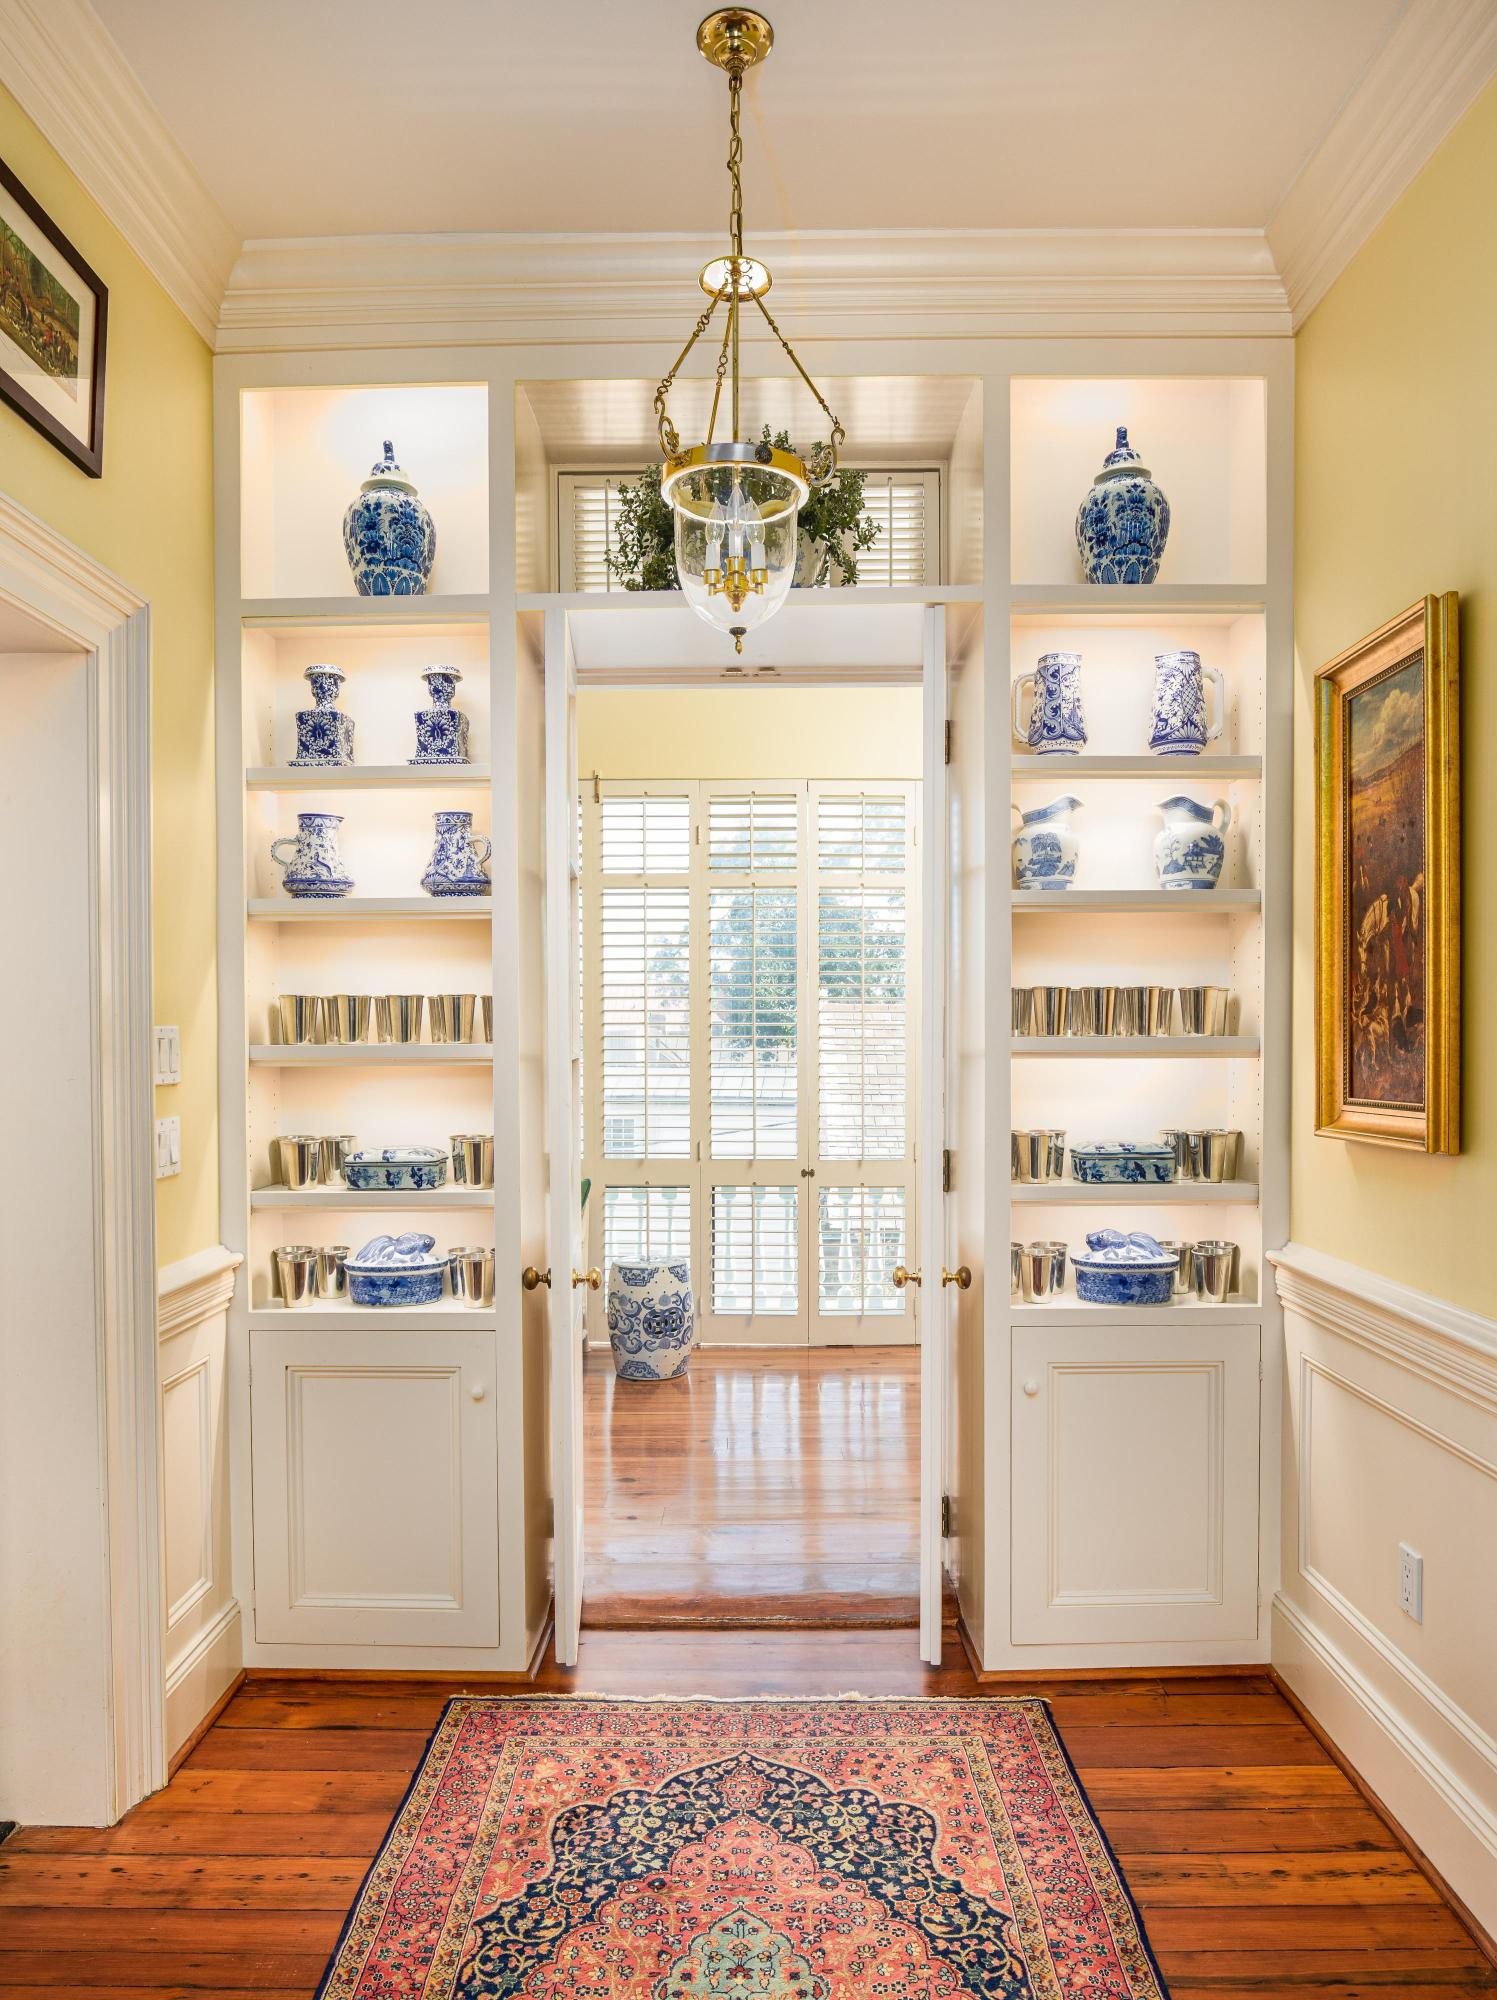 South of Broad Homes For Sale - 5 Legare, Charleston, SC - 21